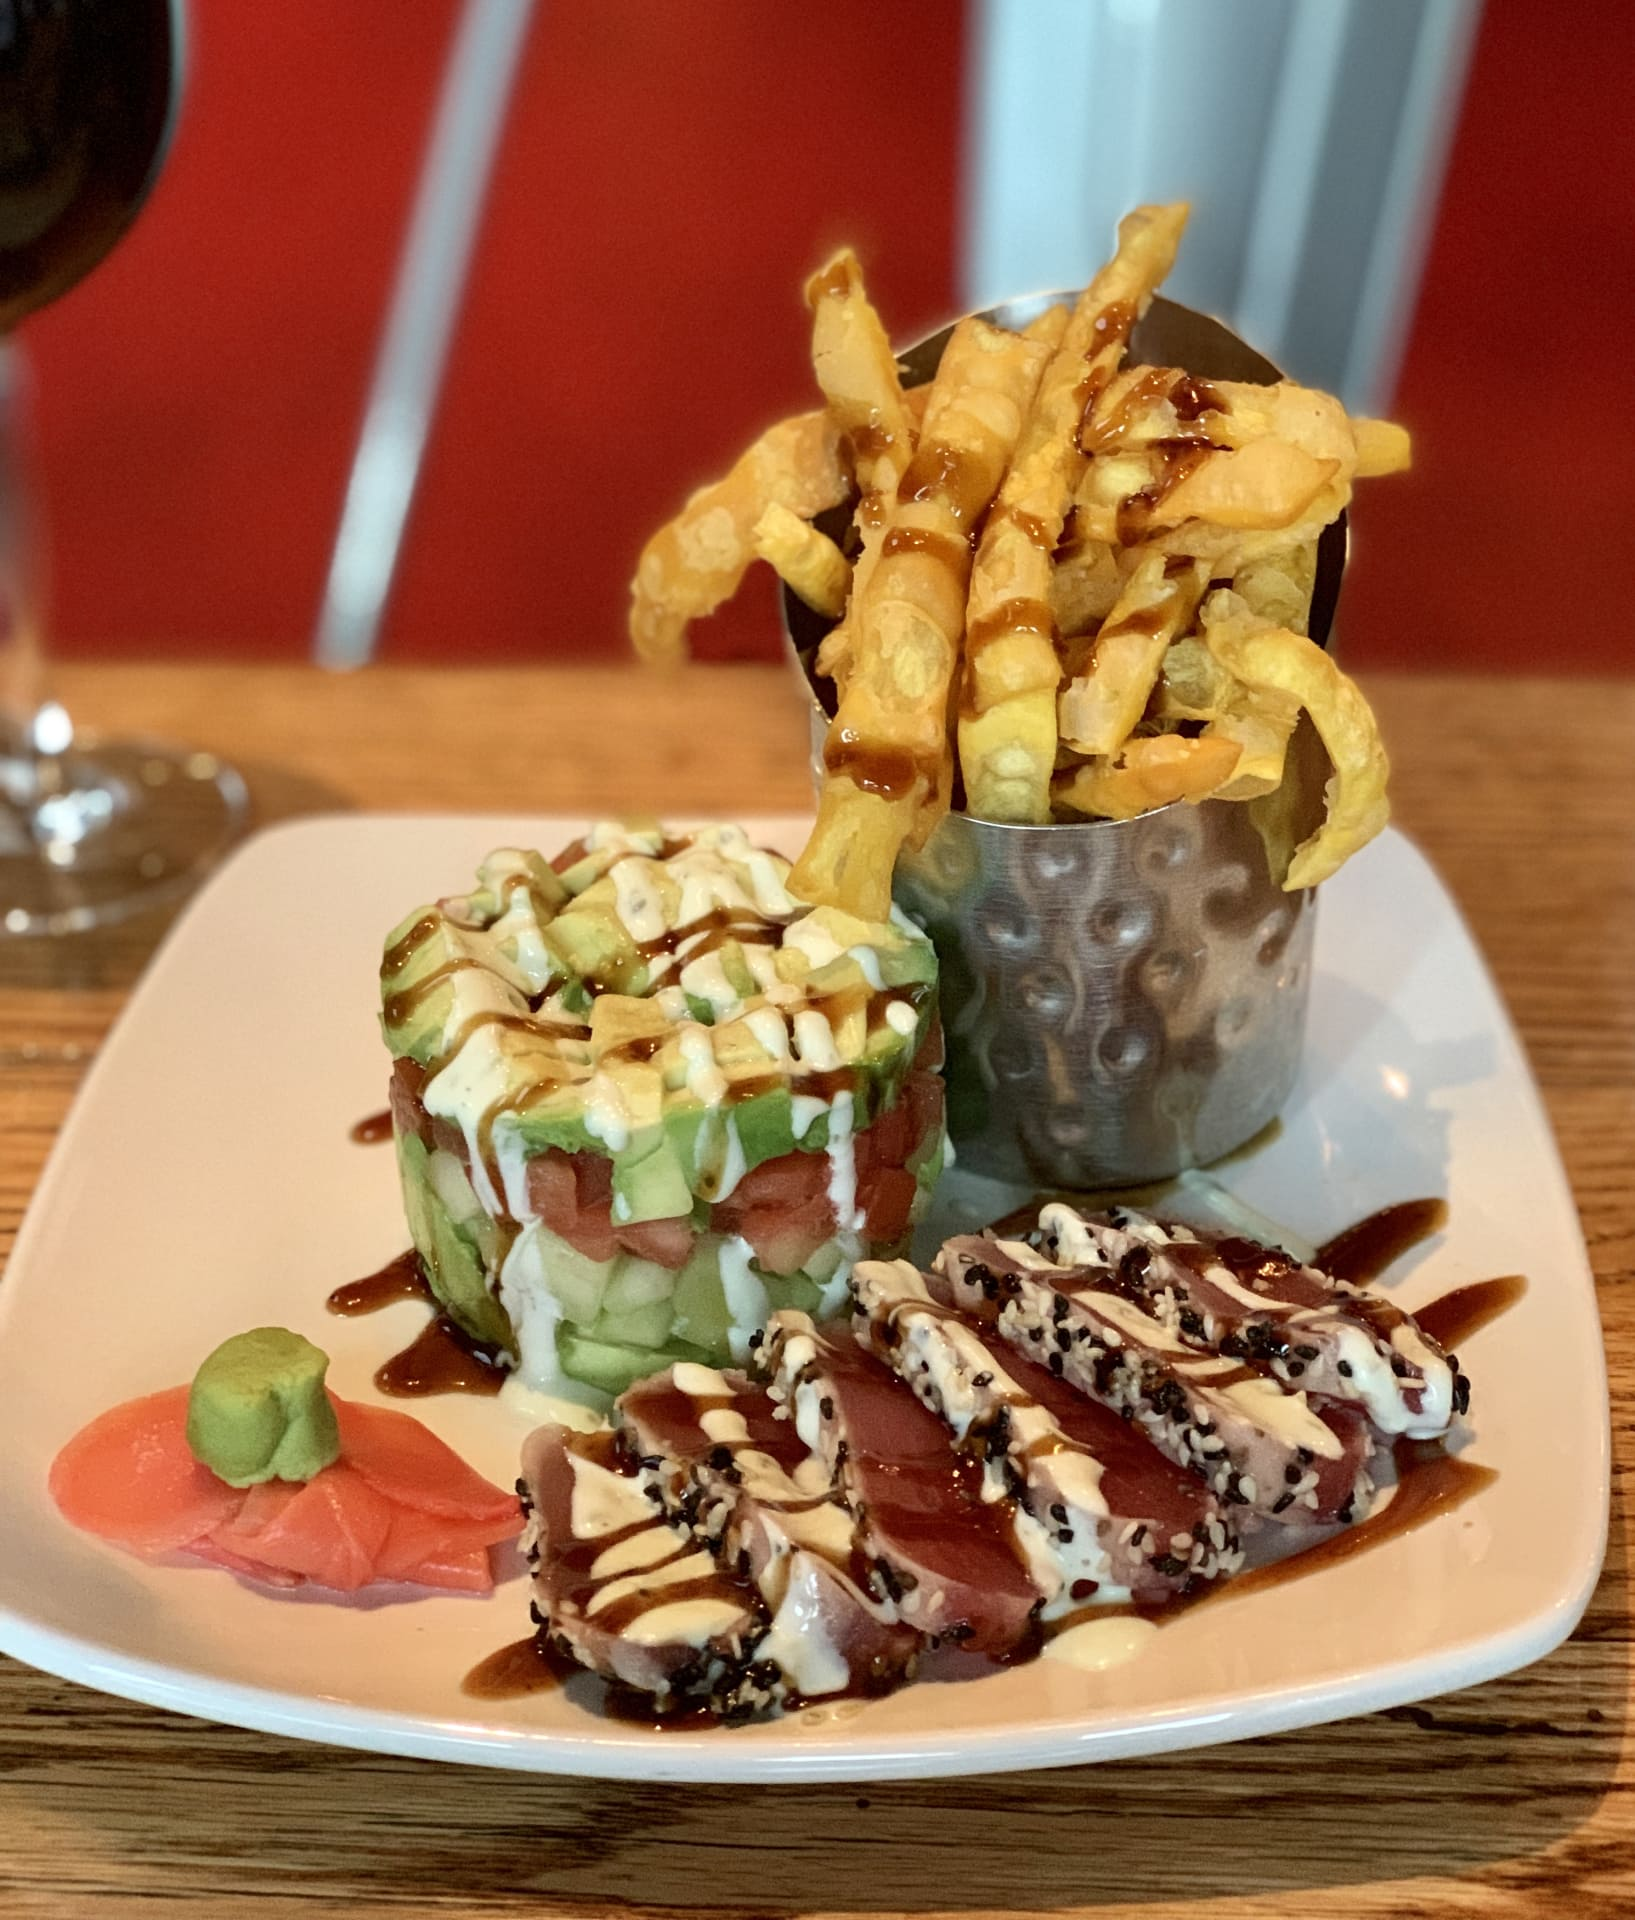 AHI TUNA & AVOCADO STACK